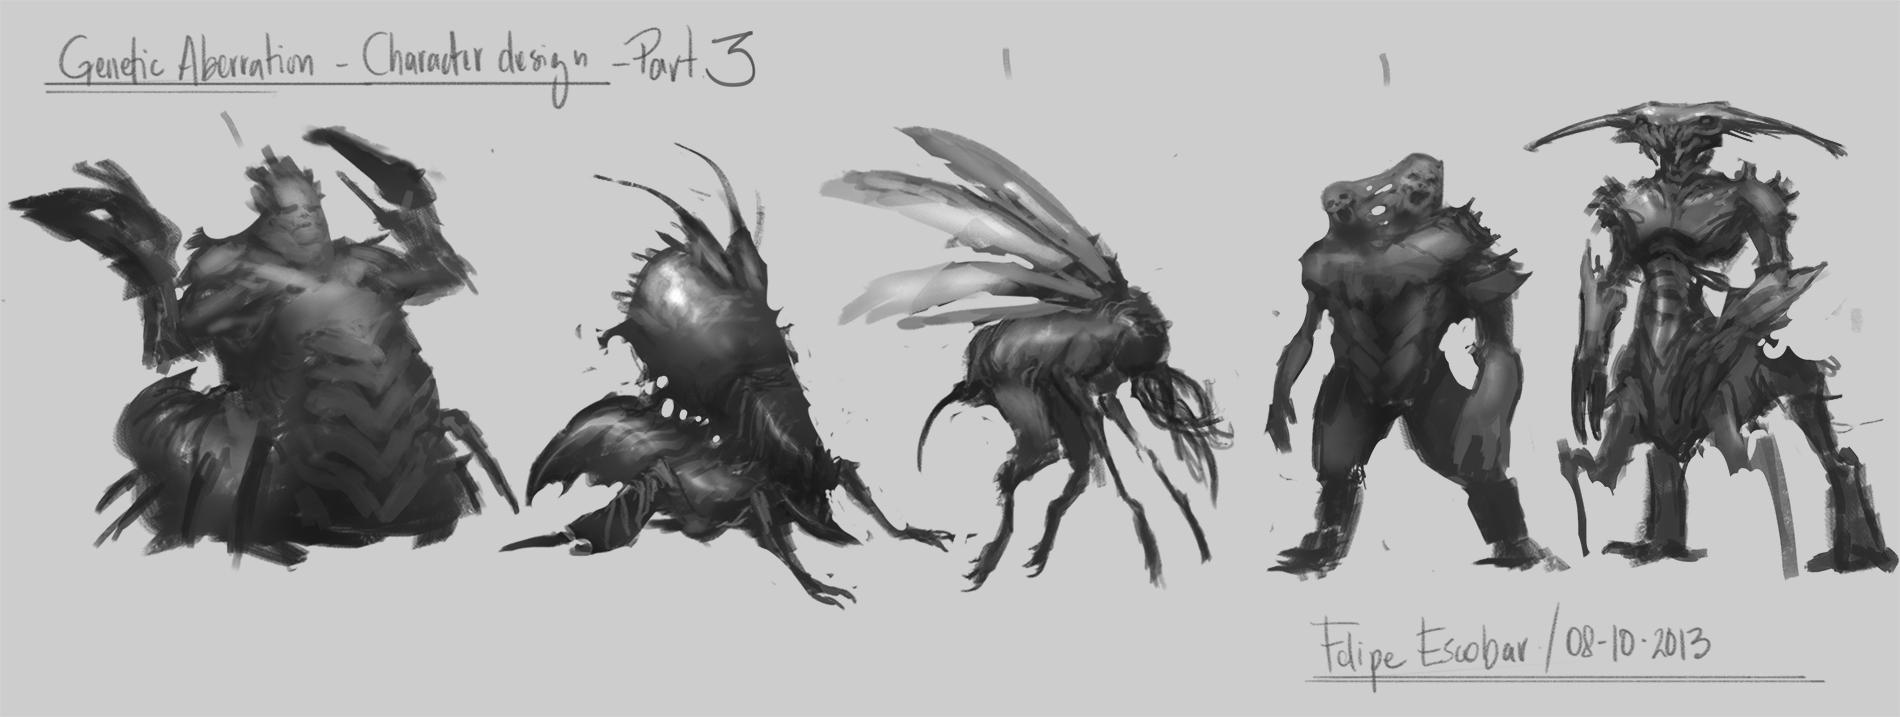 Genetic Aberration - Character design  - image 3 - student project